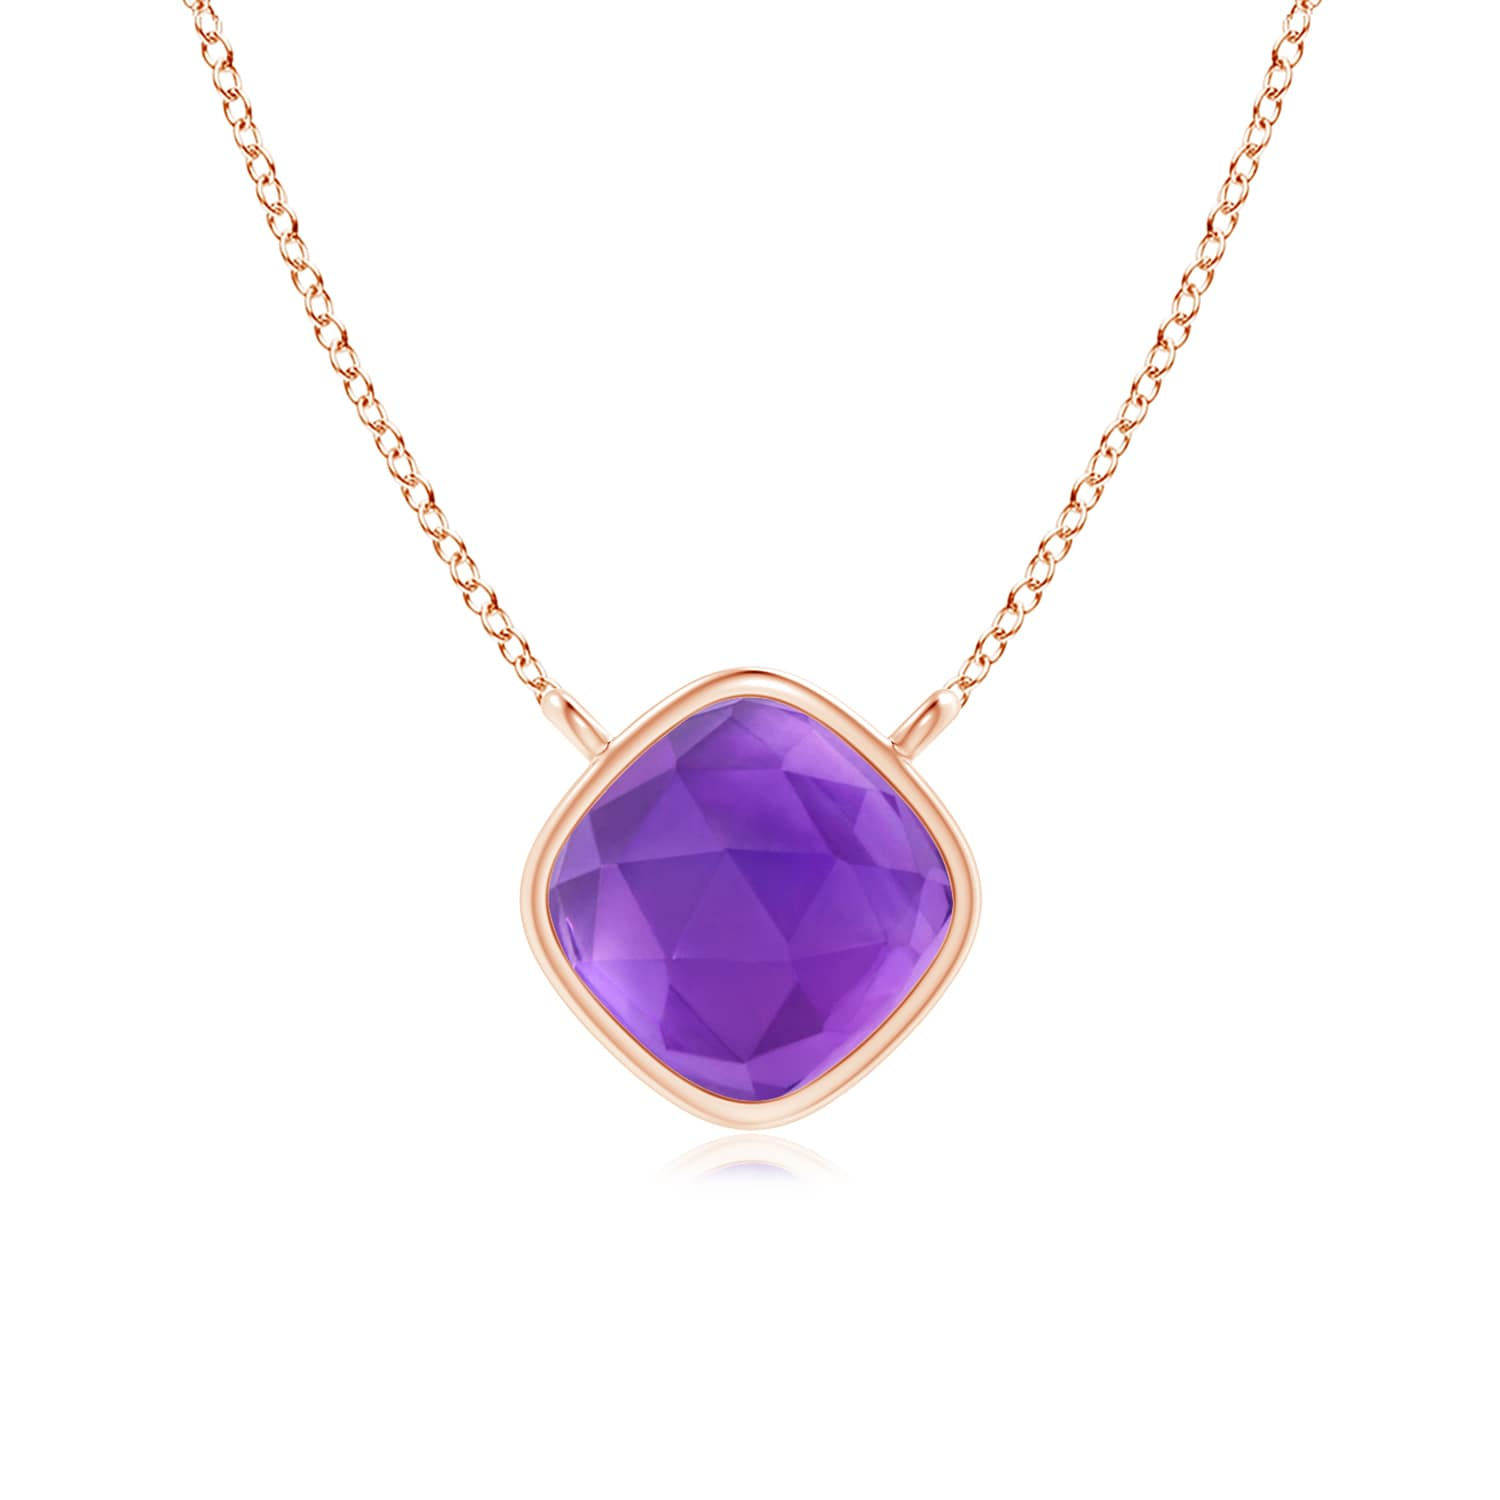 February Birthstone Pendant Necklaces Bezel Set Cushion Amethyst Solitaire Necklace in 14K Rose Gold (5mm Amethyst)... by Angara.com